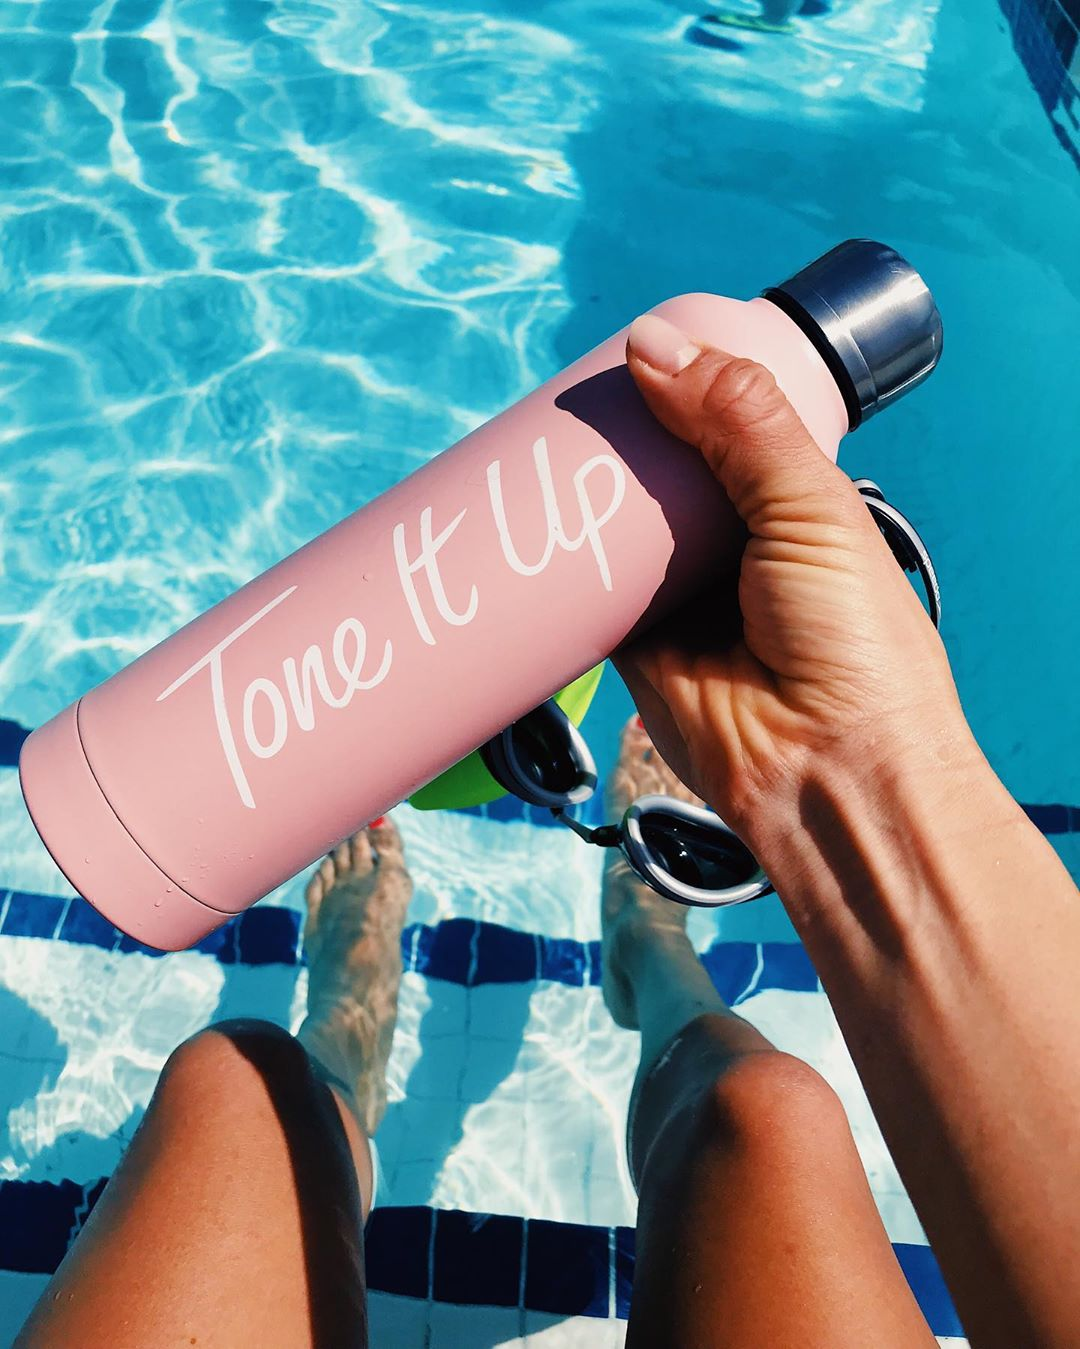 Get healthy hydration tips from Tone It Up to boost your metabolism and energy.